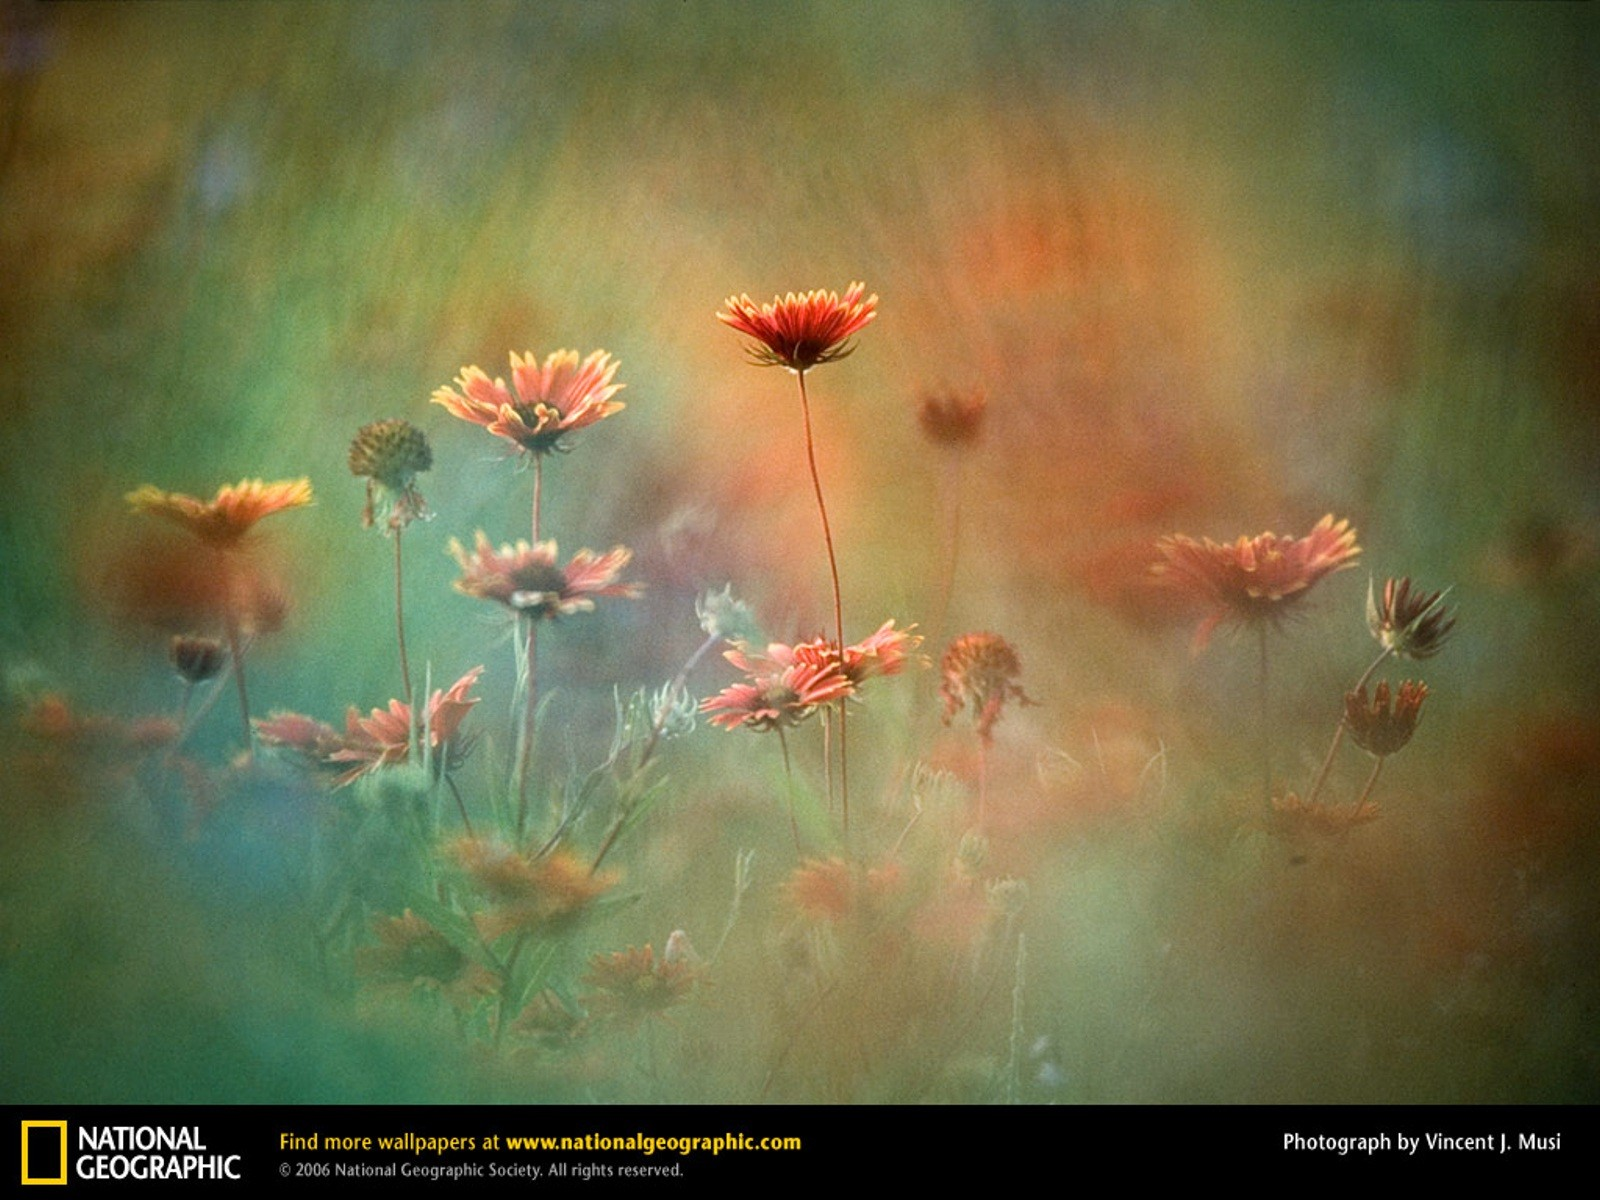 Wallpaper Gallery: Download National Geographic Wallpaper Spring Gallery